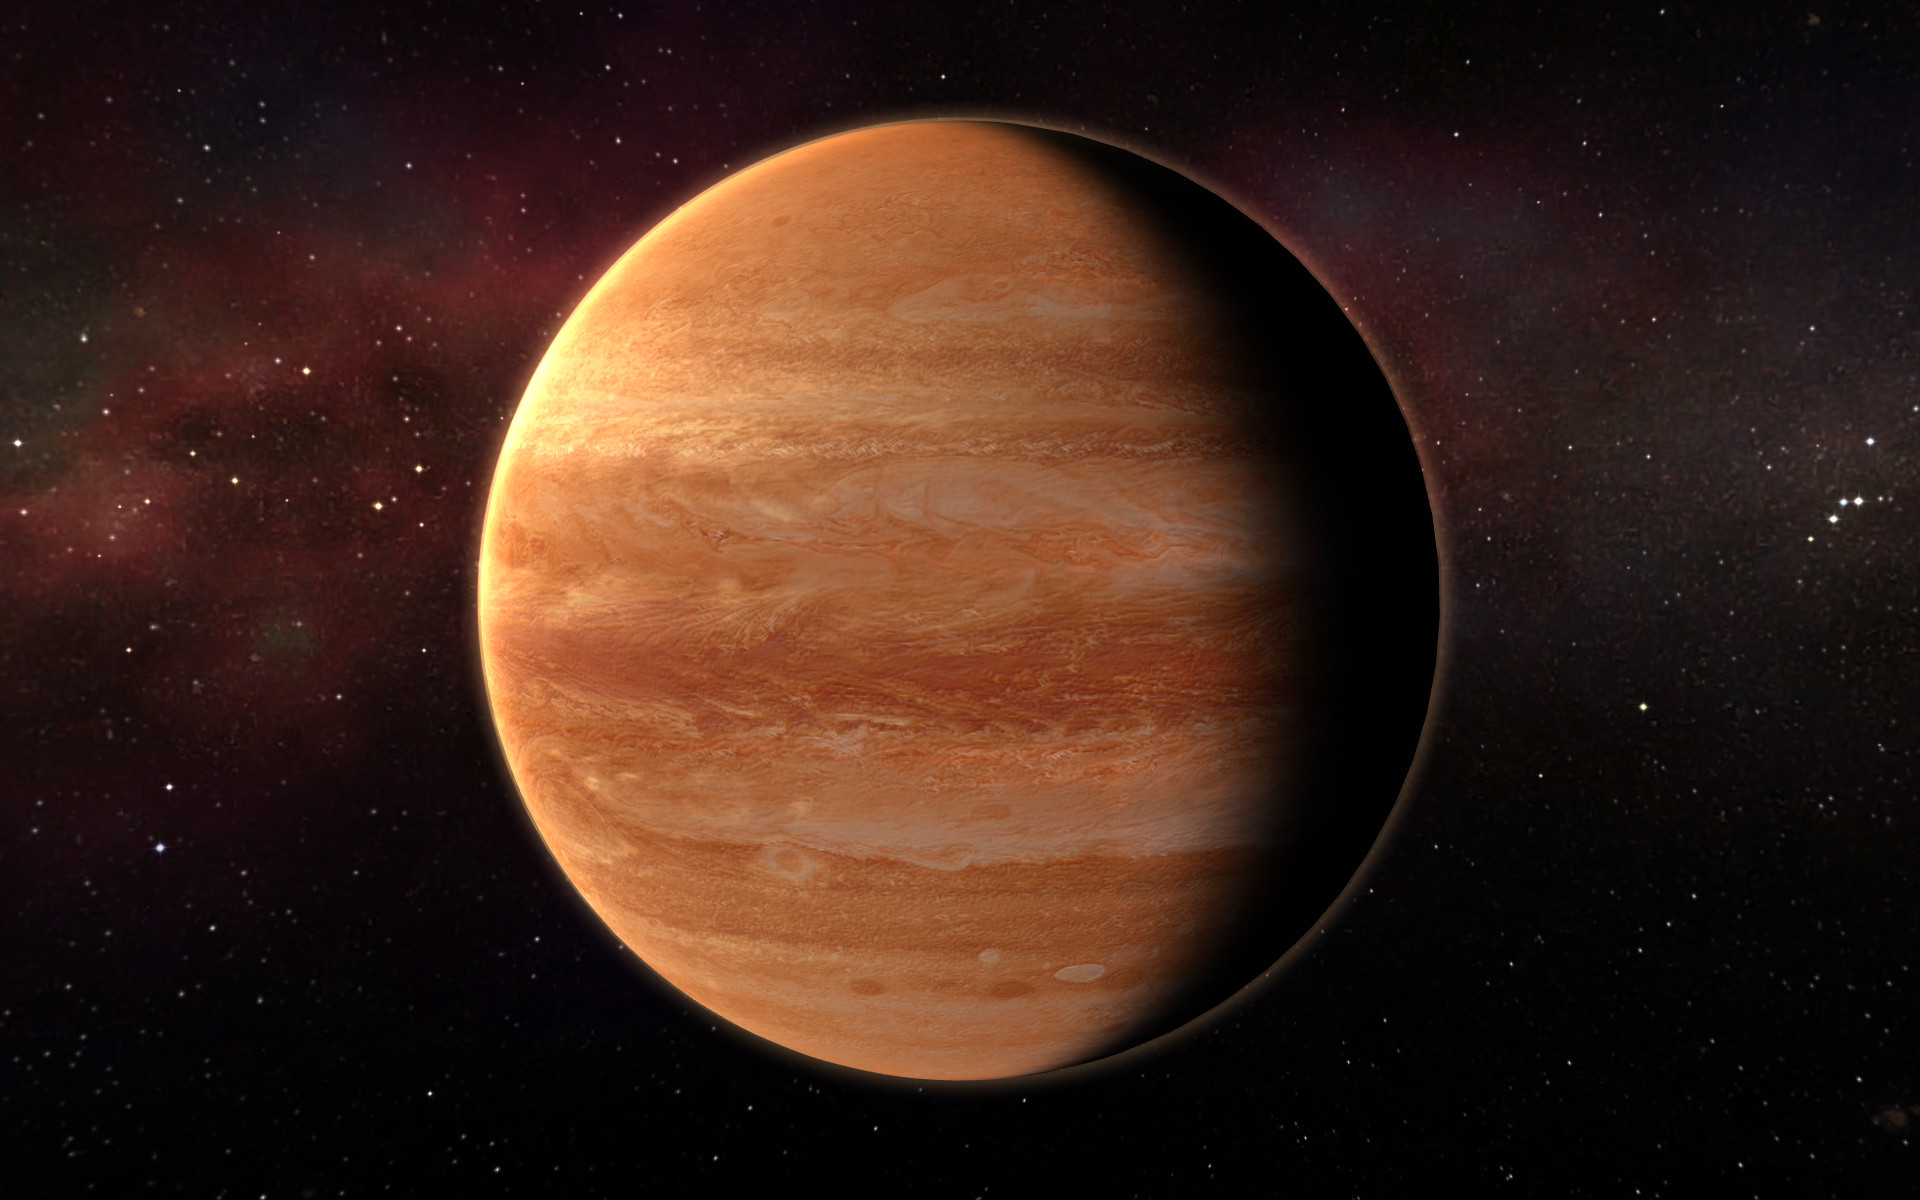 real planet jupiter - photo #17